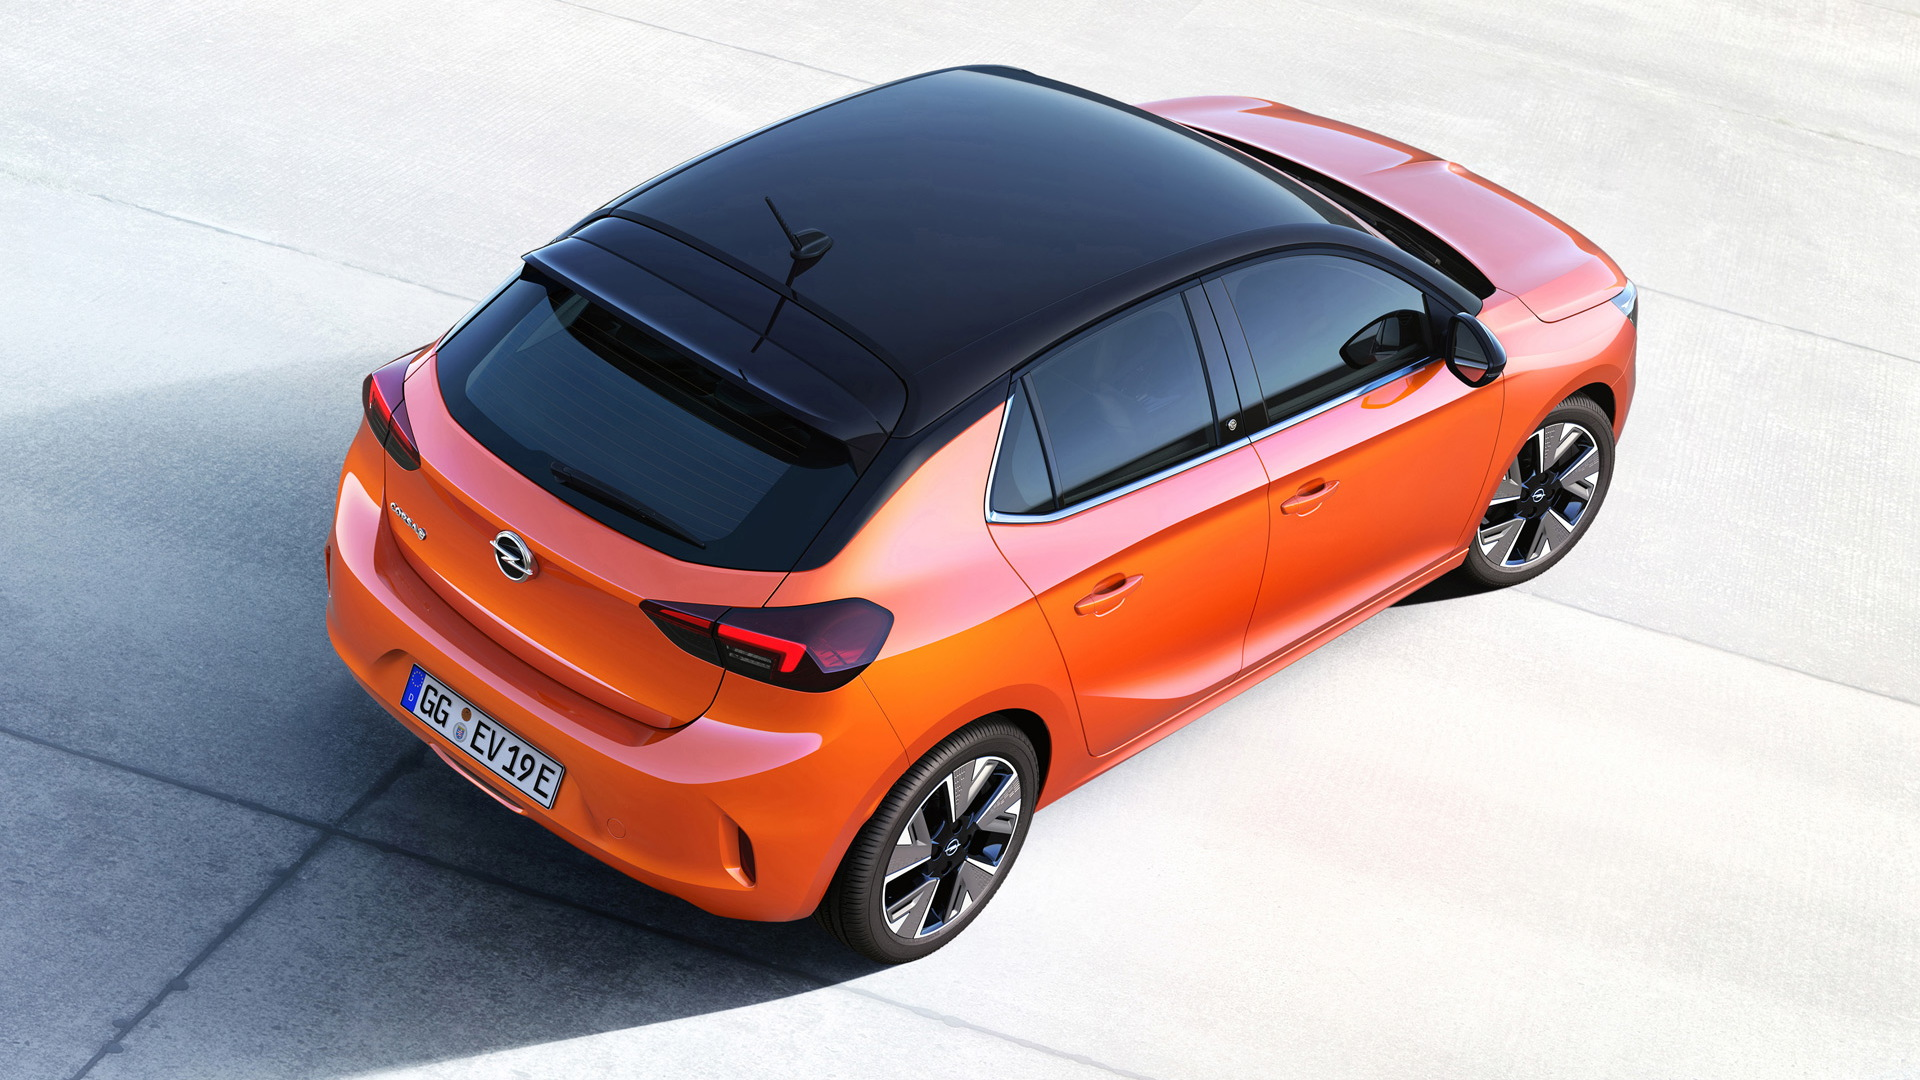 opel 39 s first car post gm is the 2020 corsa e electric hatch. Black Bedroom Furniture Sets. Home Design Ideas